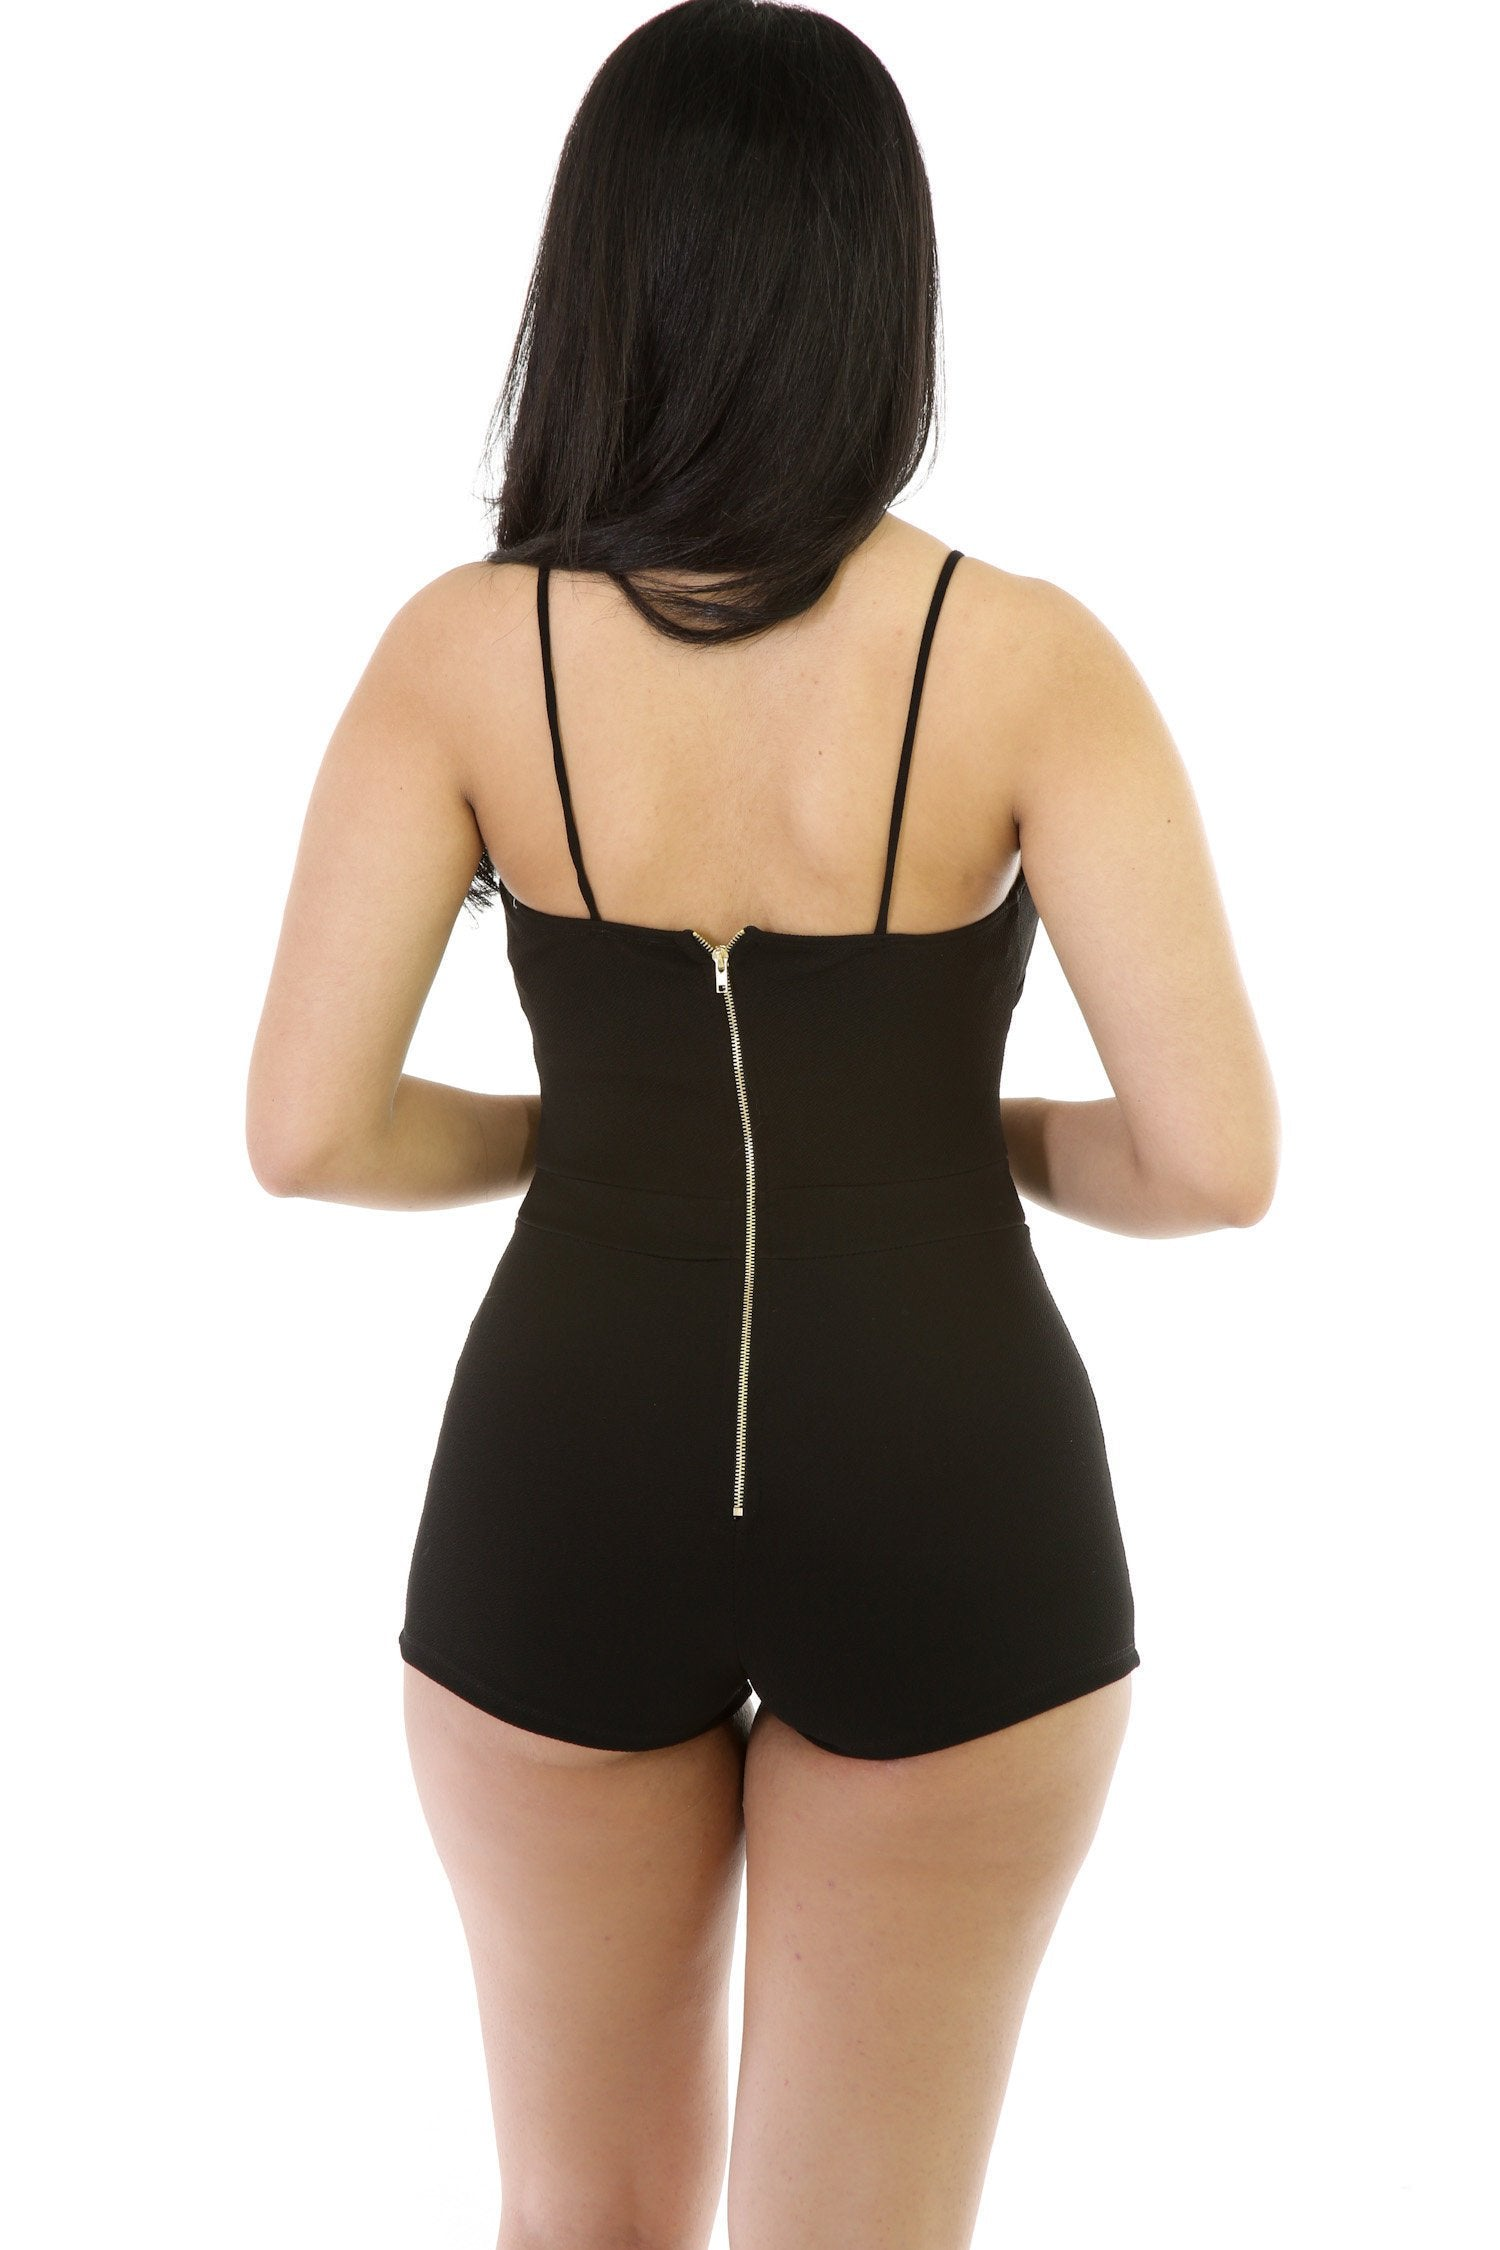 Runn Lee Romper